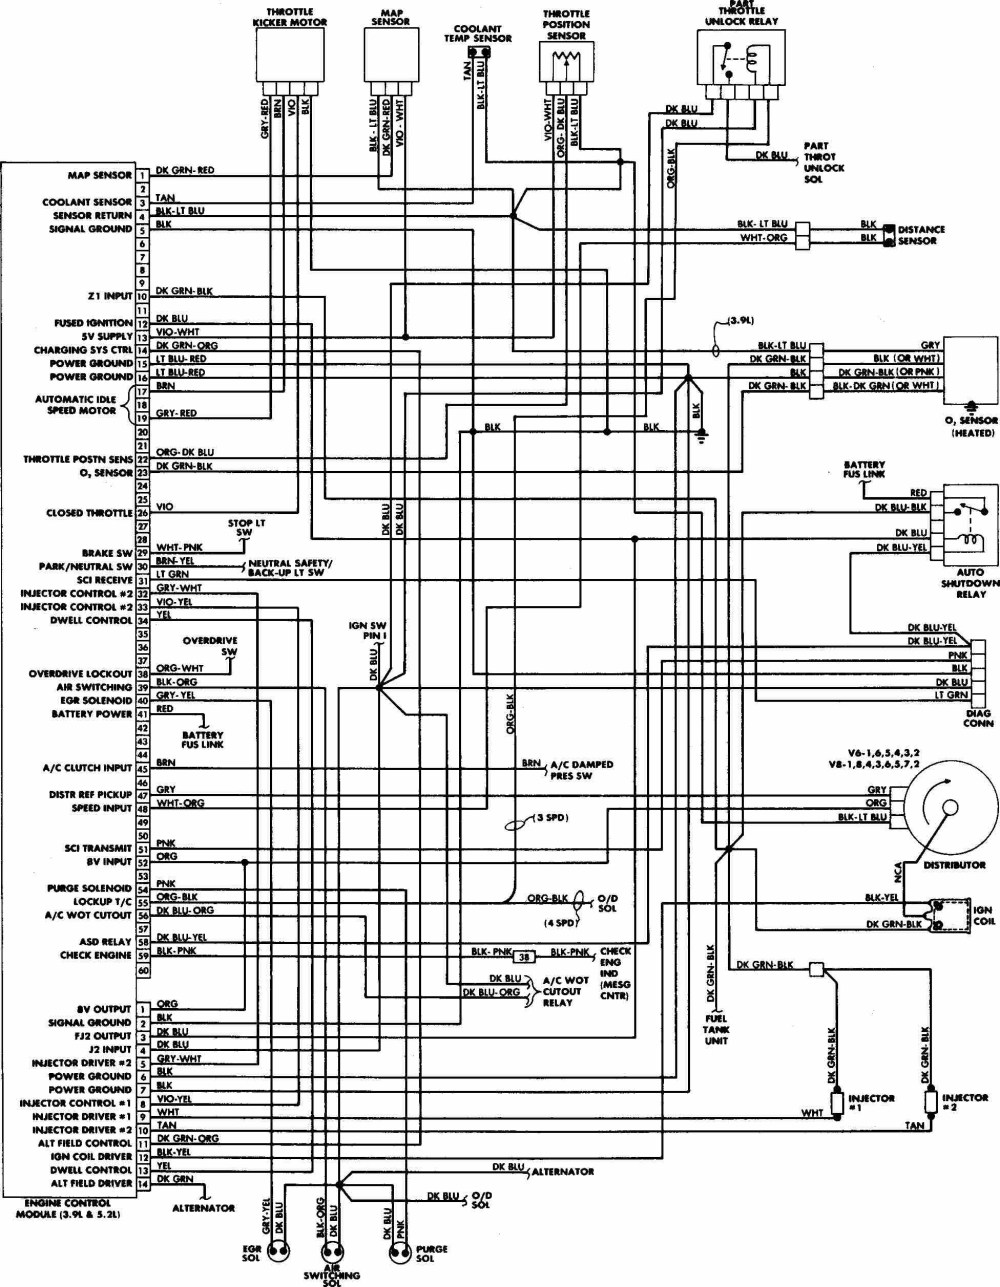 medium resolution of 1998 dodge durango engine diagram 2003 dodge durango emissions diagram free download wiring diagram of 1998